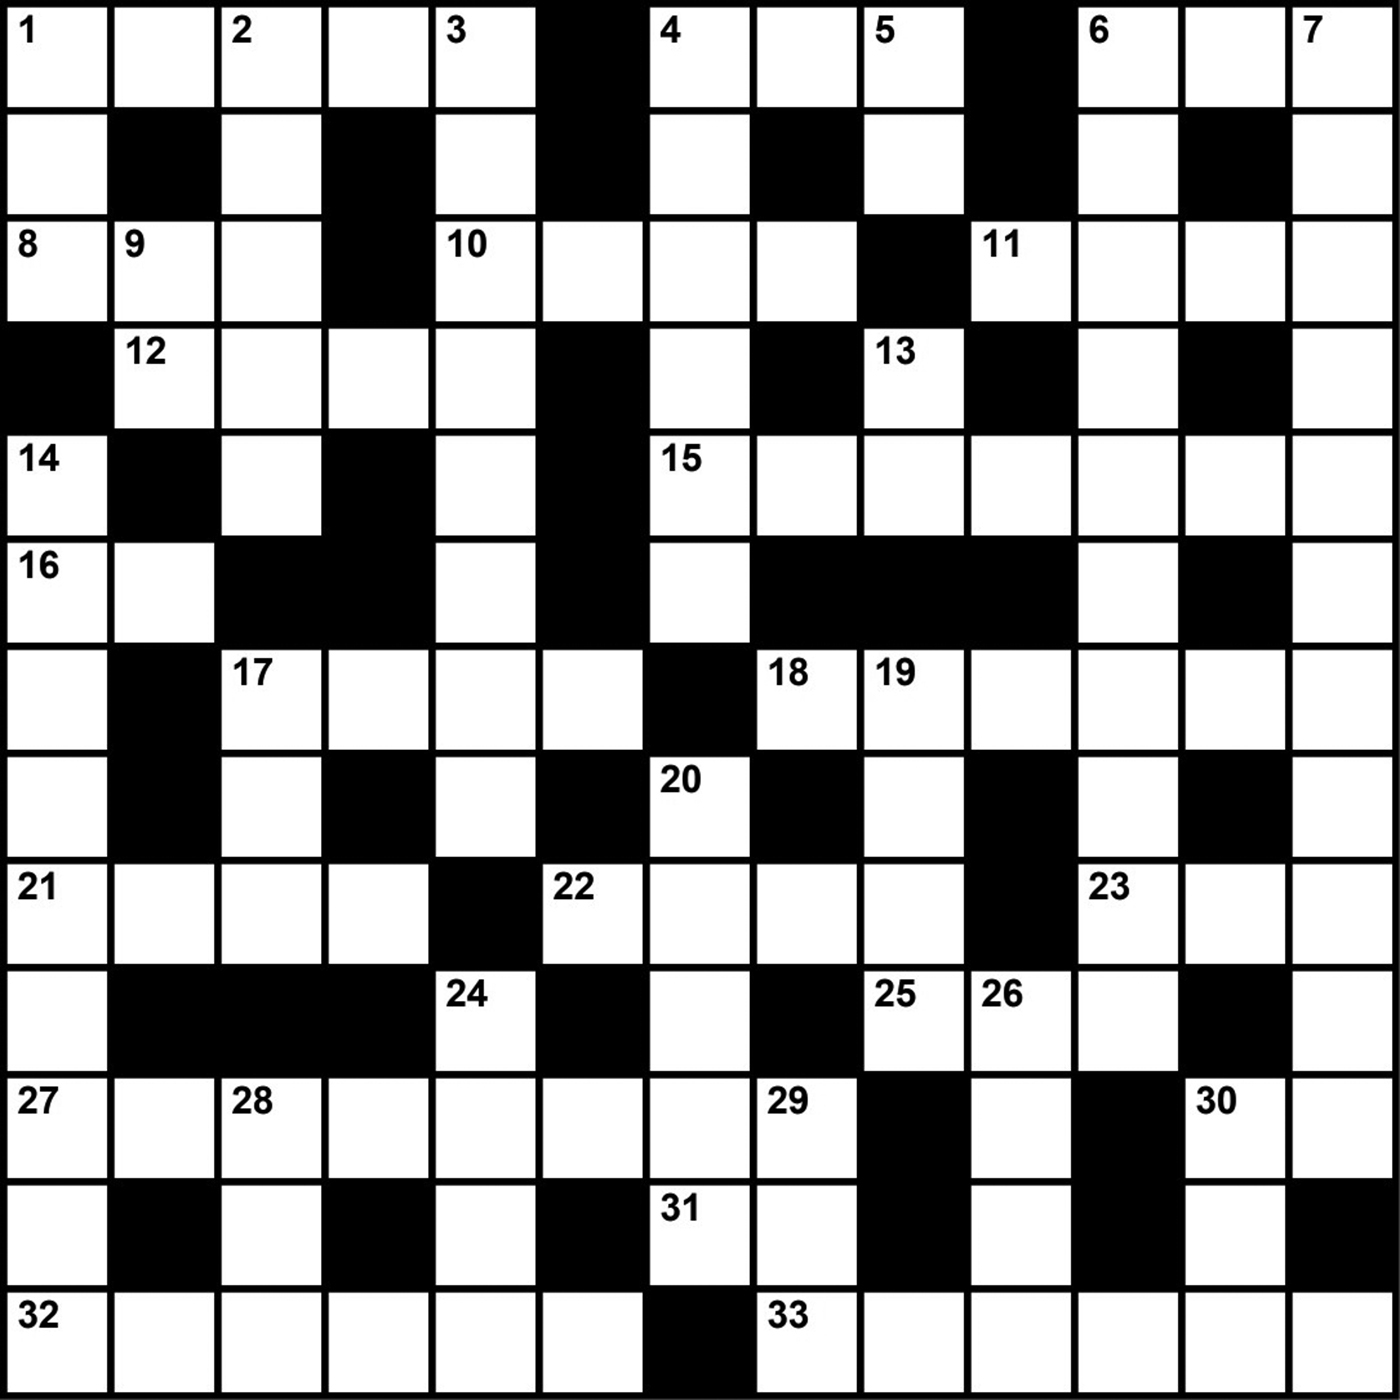 Crossword Puzzle: Sleep Medicine-Themed Clues (June 2018) - Sleep Review - Printable Crossword Puzzles June 2018